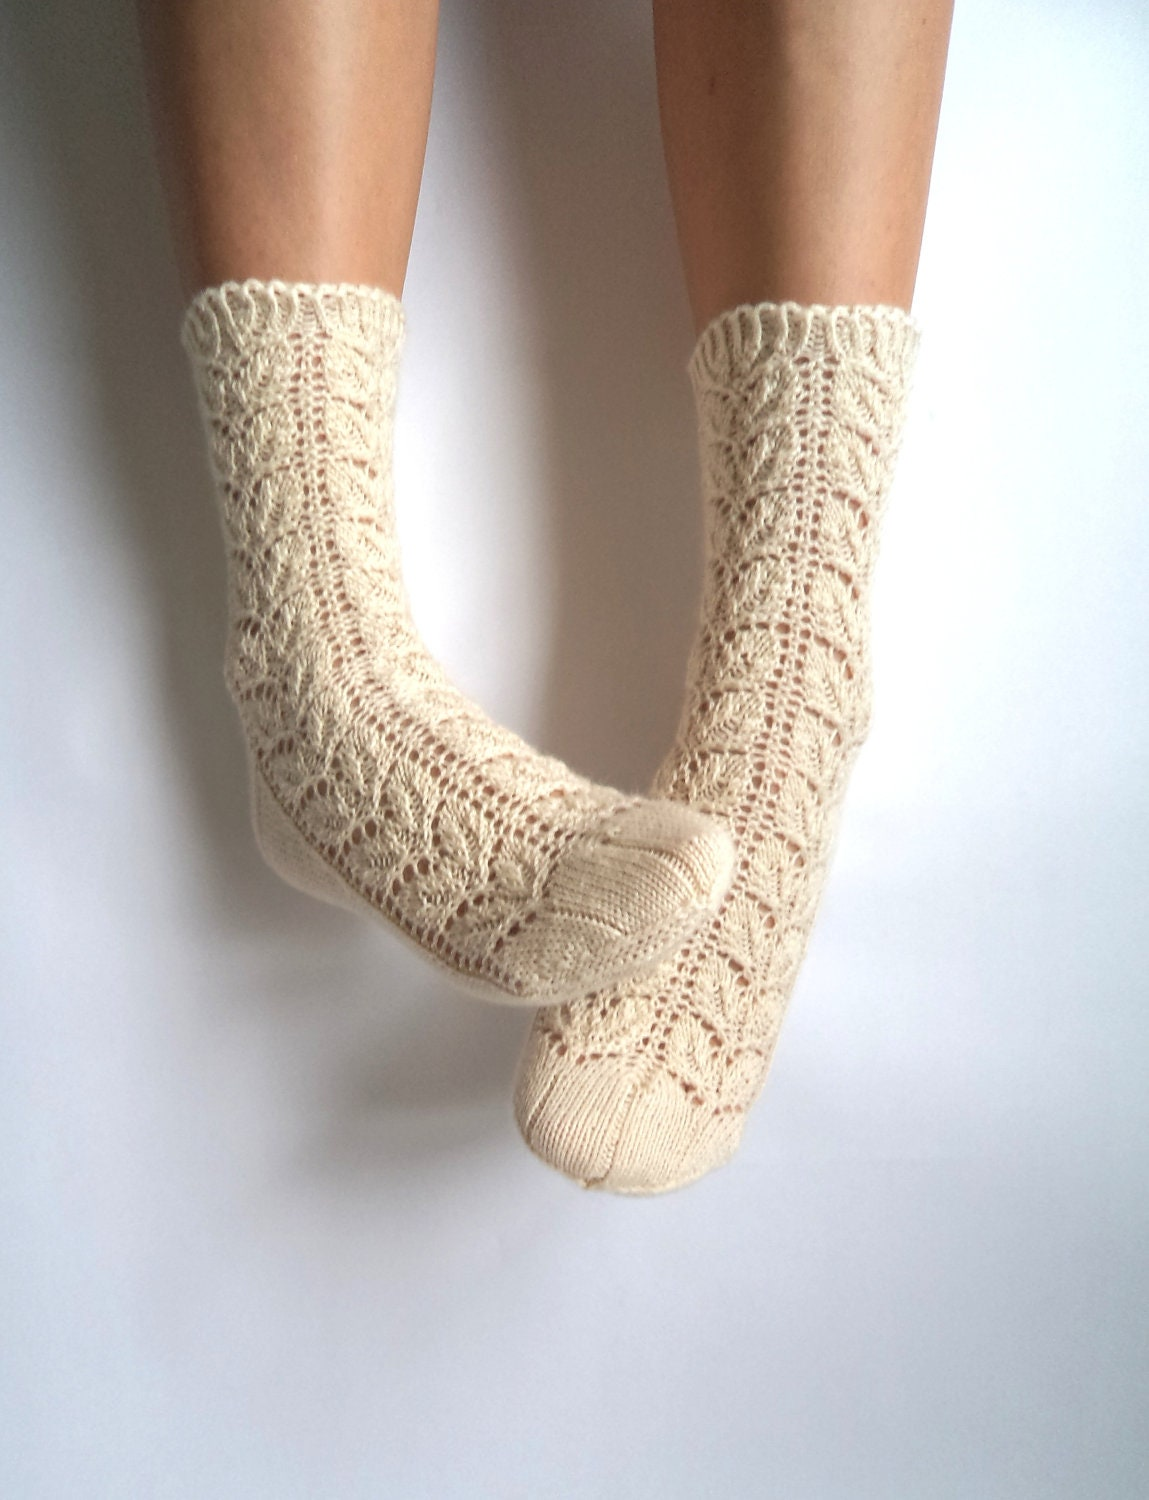 Off white lace socks. Hand-knit wool socks. Wool by GrietaKnits